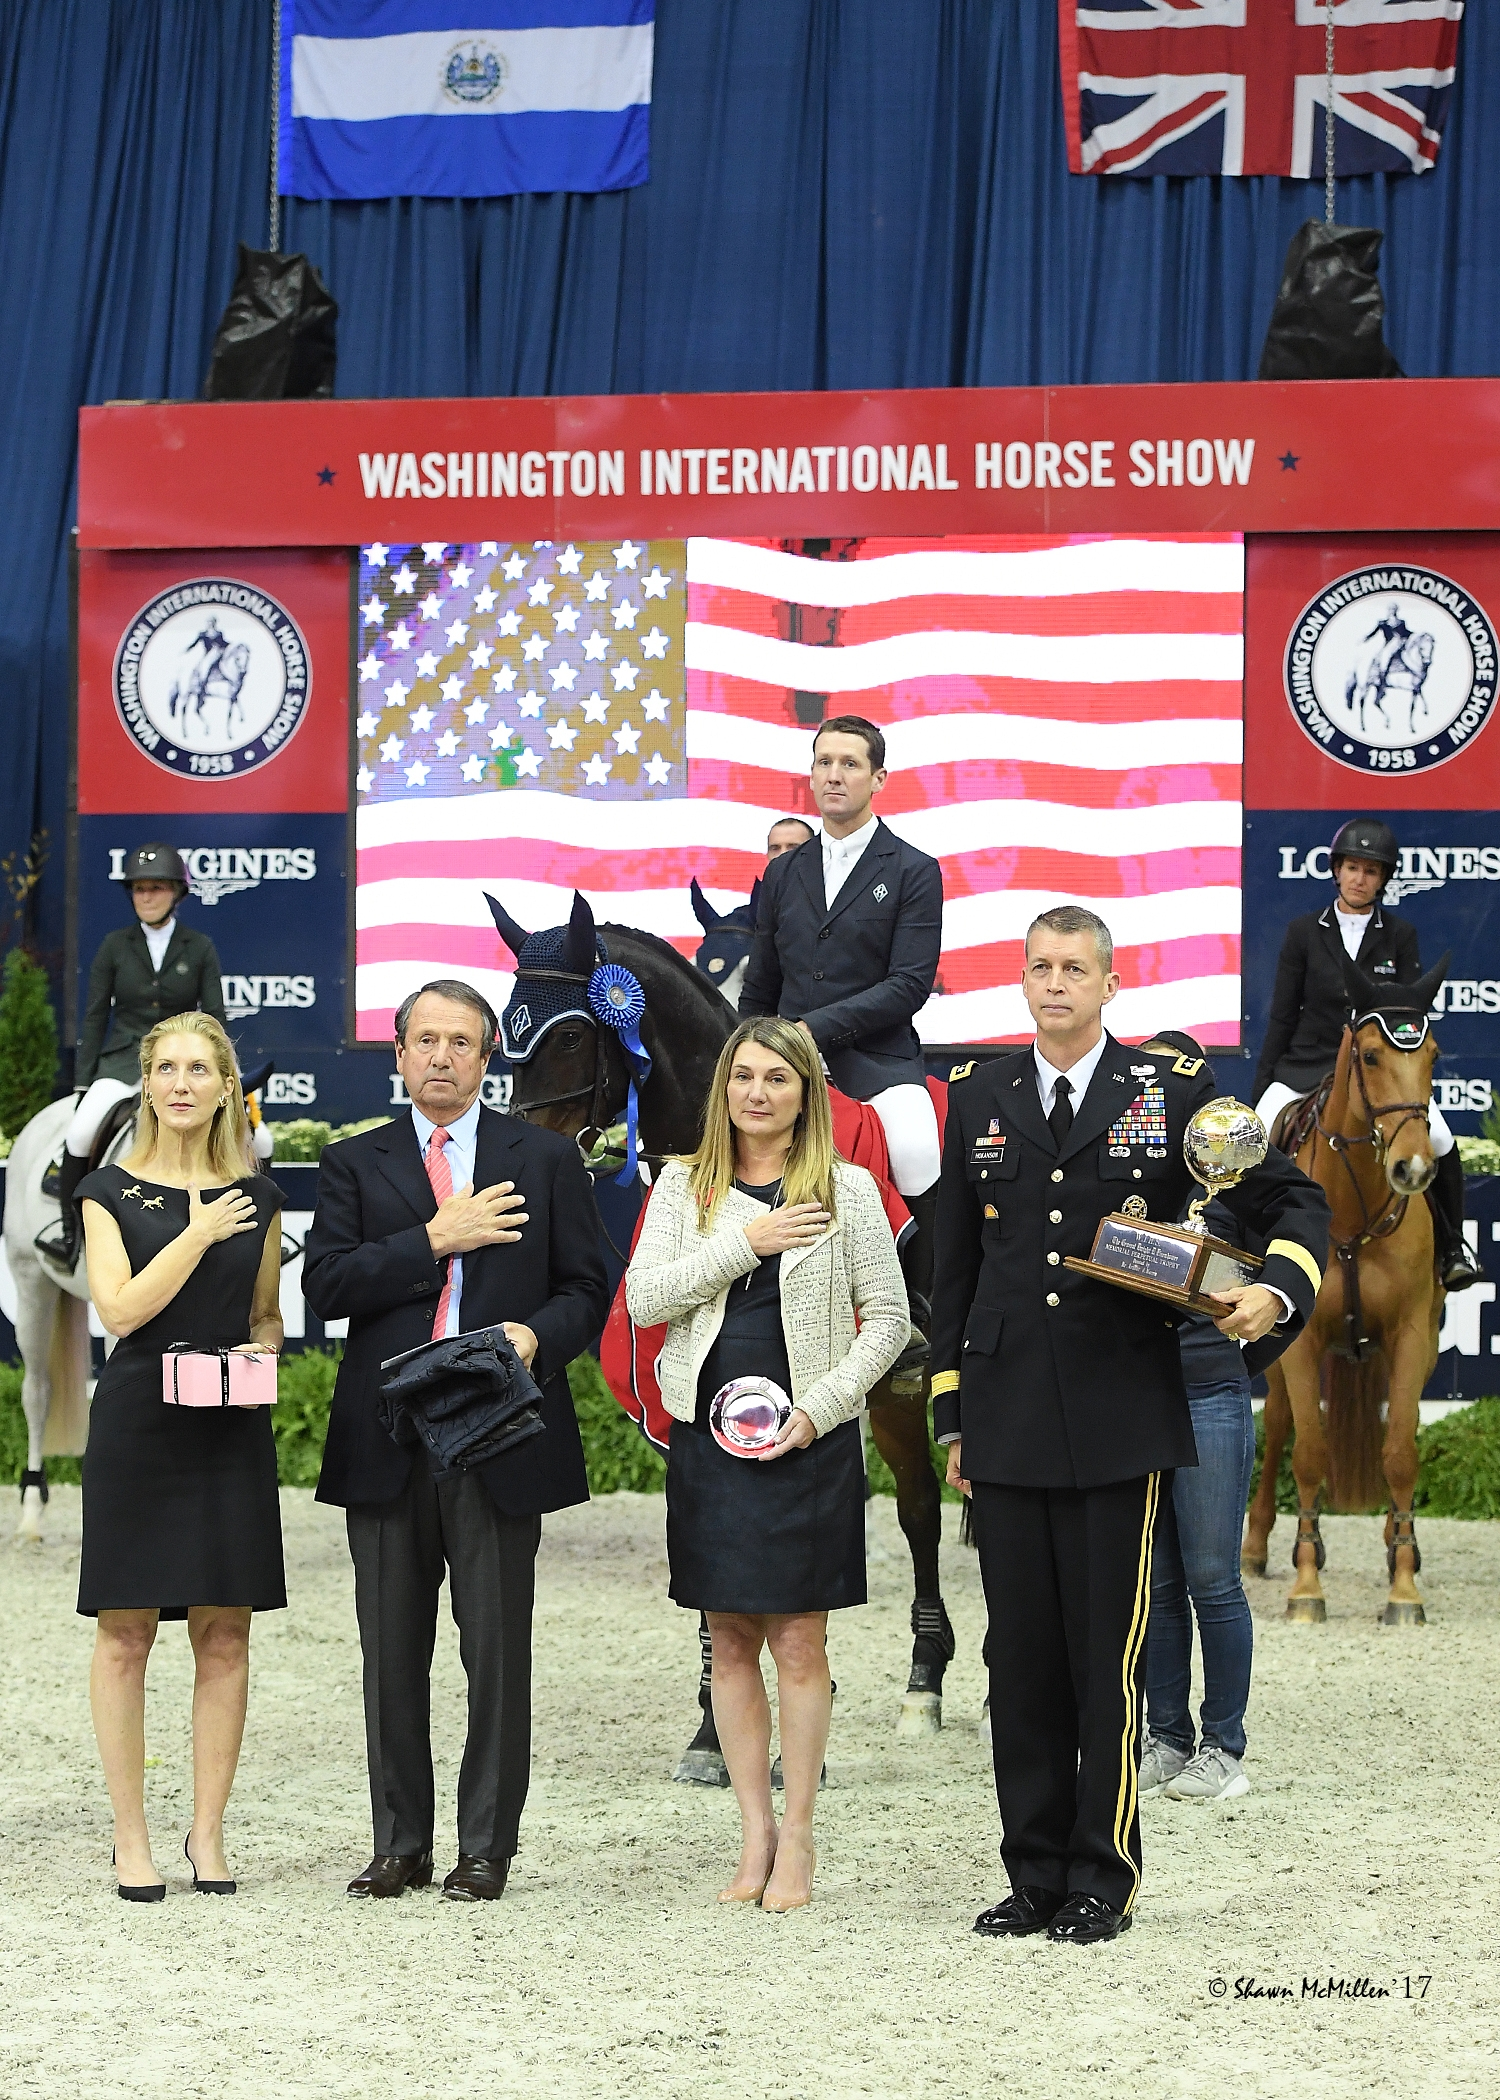 McLain Ward rode HH Carlos Z to won final victory on Friday night, winning the $50,000 International Jumper Speed Final before announcing the gelding's retirement. <br><b>Photo by <a href='http://www.shawnmcmillen.com/'target='_blank'>Shawn McMillen Photography</a></b>